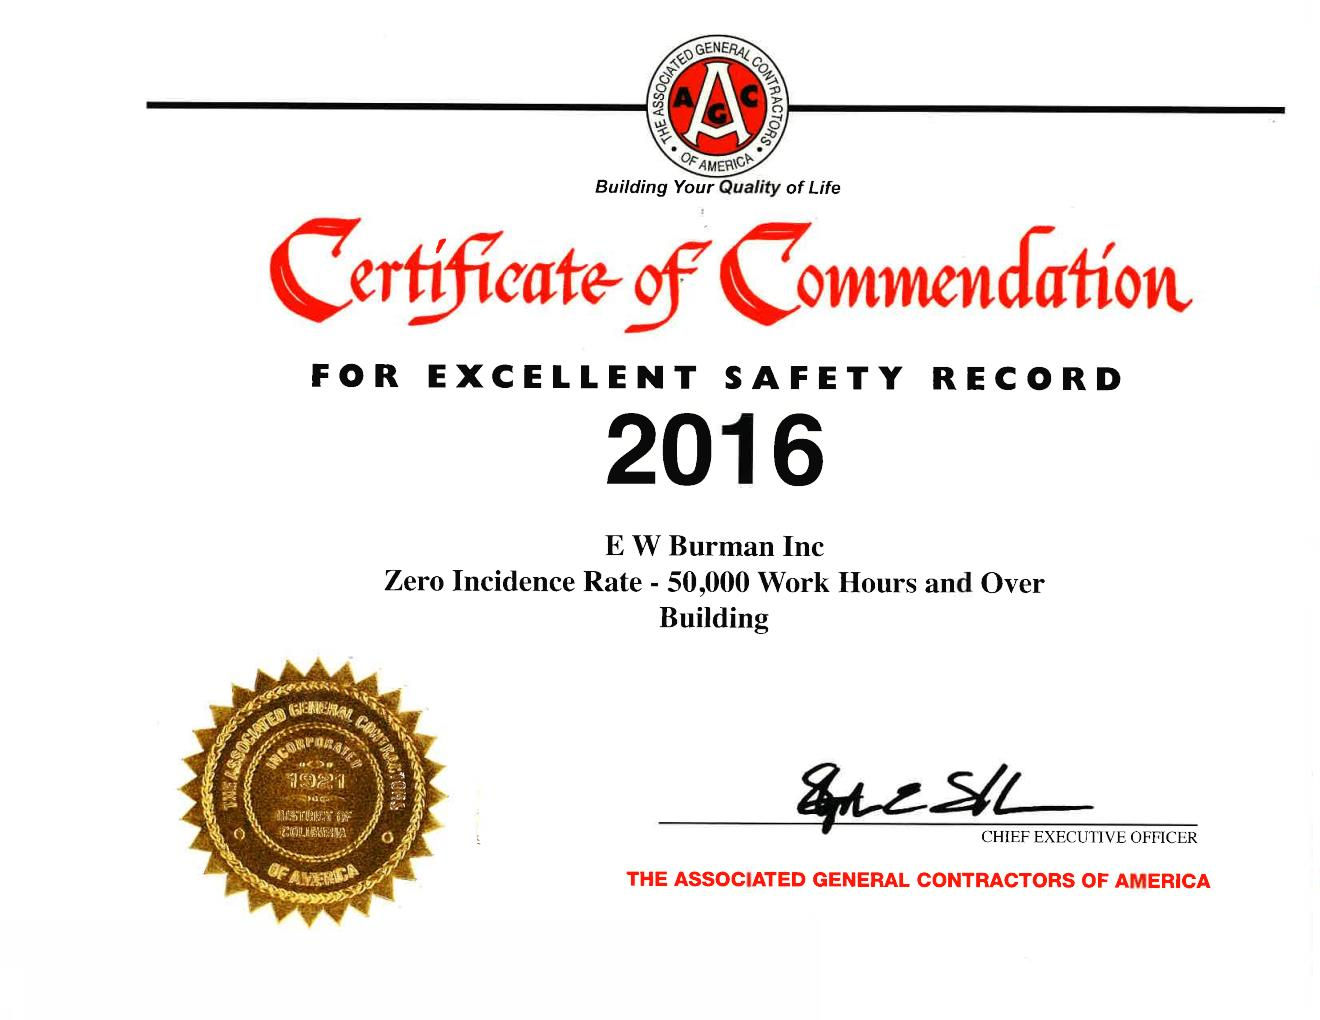 Associated General Contractors (AGC) Award Winner For Excellent Safety Record – 2016